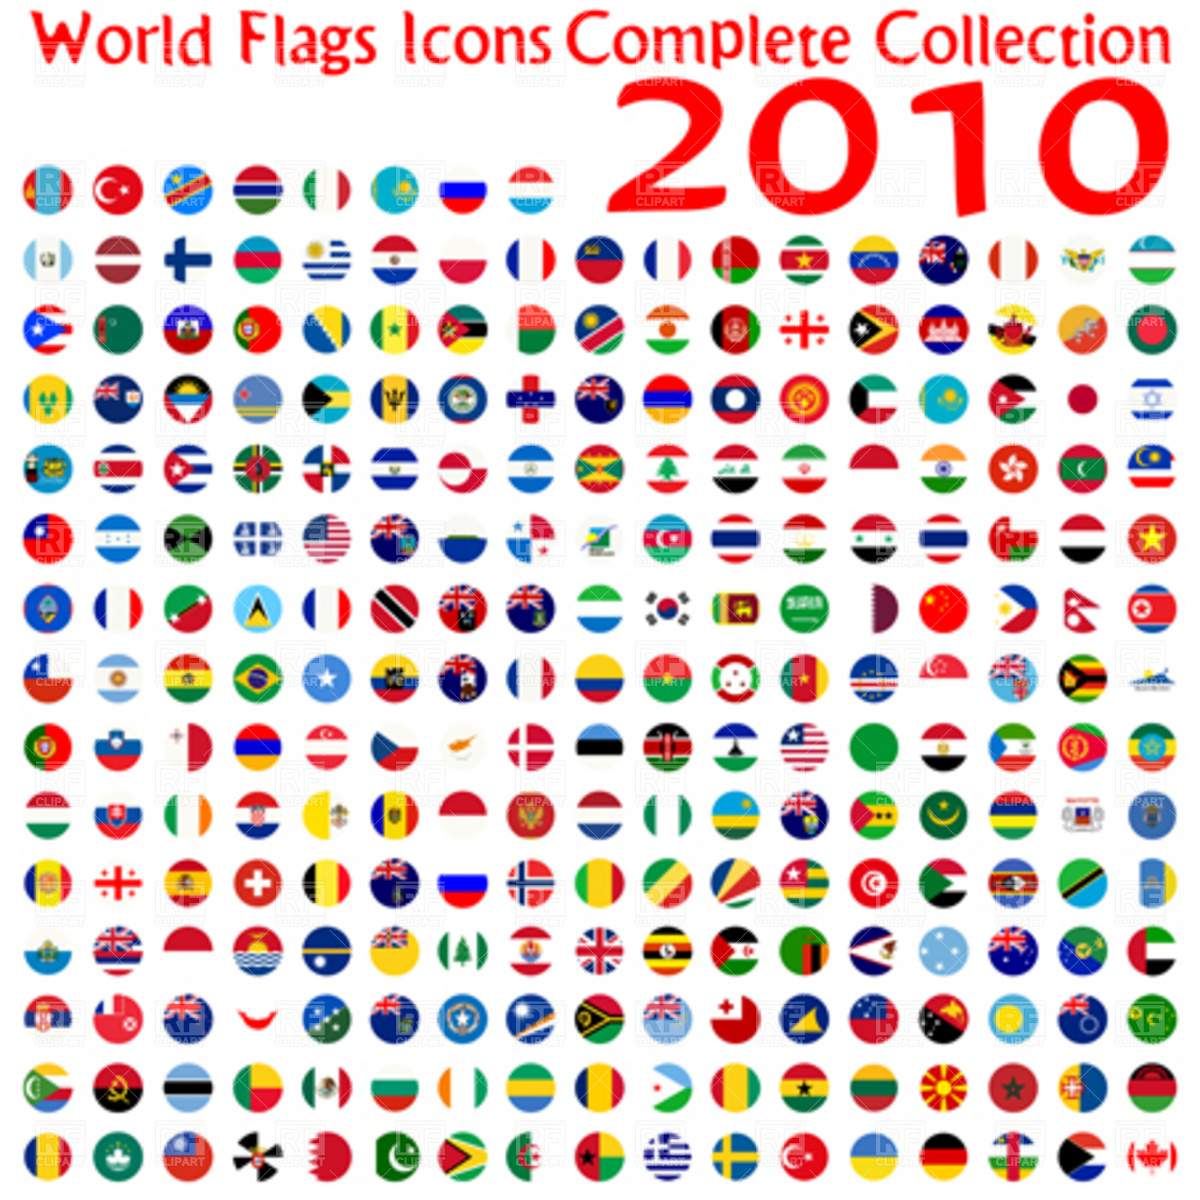 1200x1200 World Flags Icons Collection, Abstract Vector Art Illustration